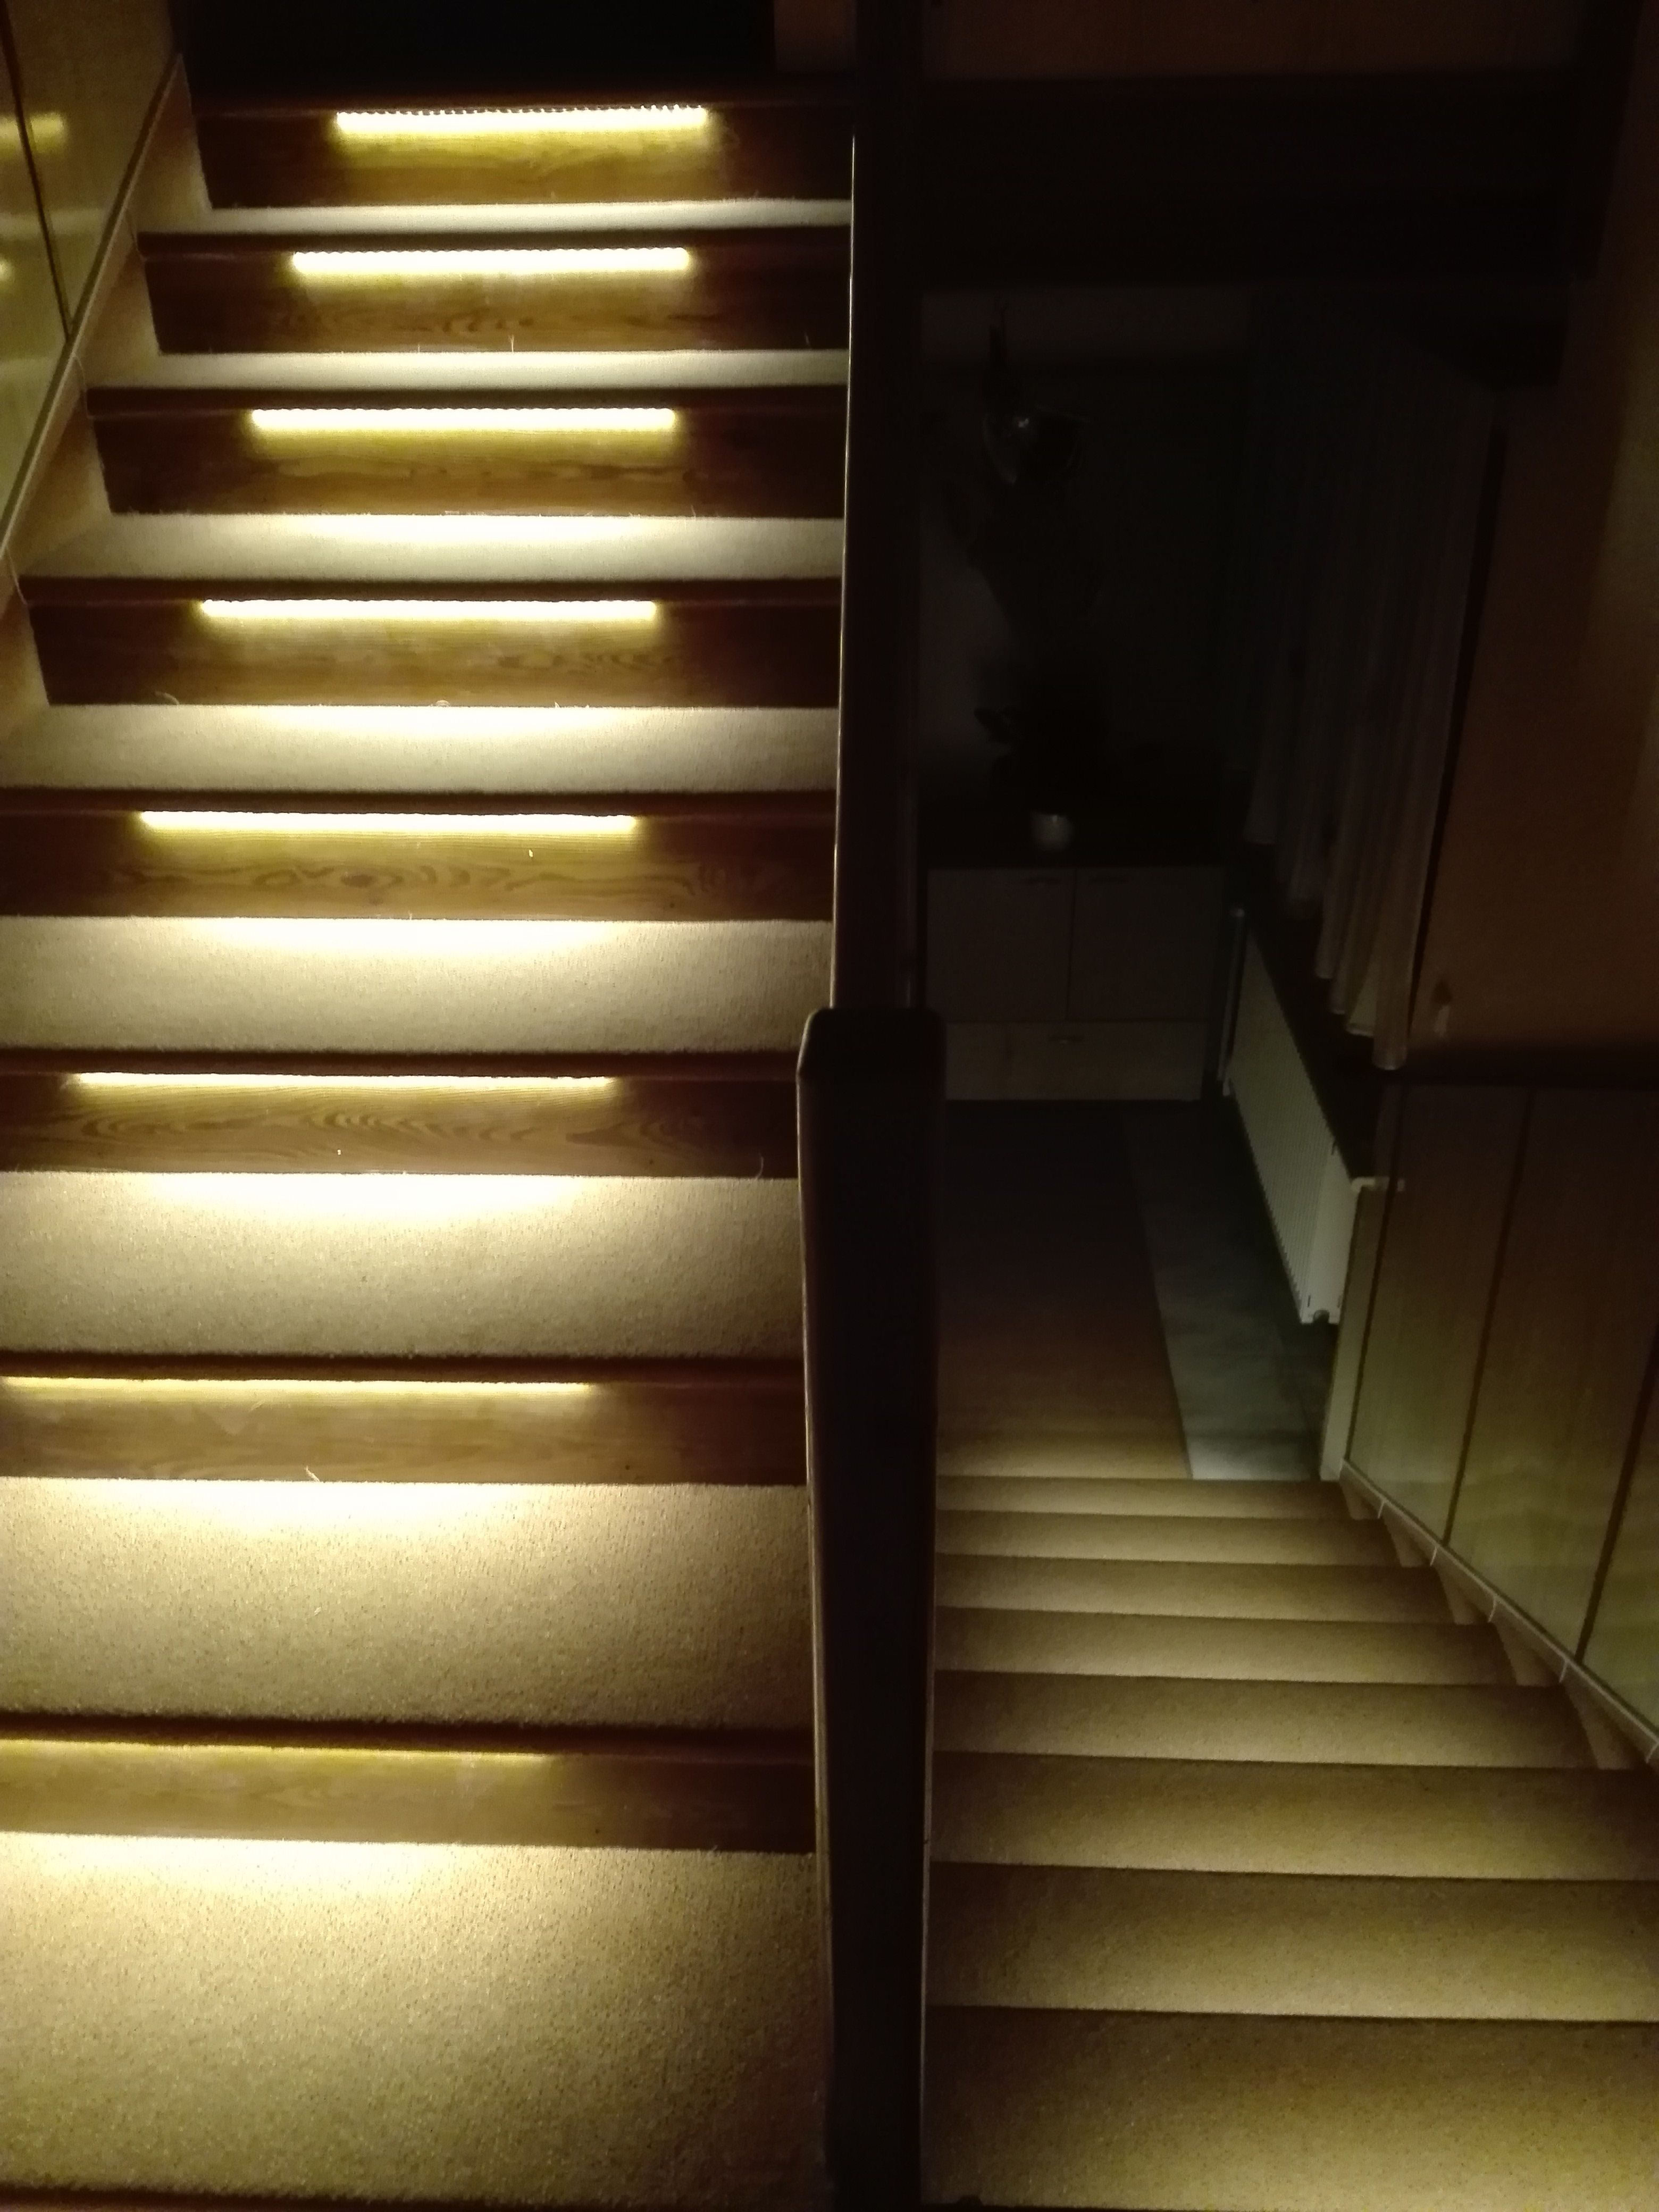 staircase lighting led. Staircase Lighting With Led Strip Lights 5050#ledstrip#strip#ledtape#tape#